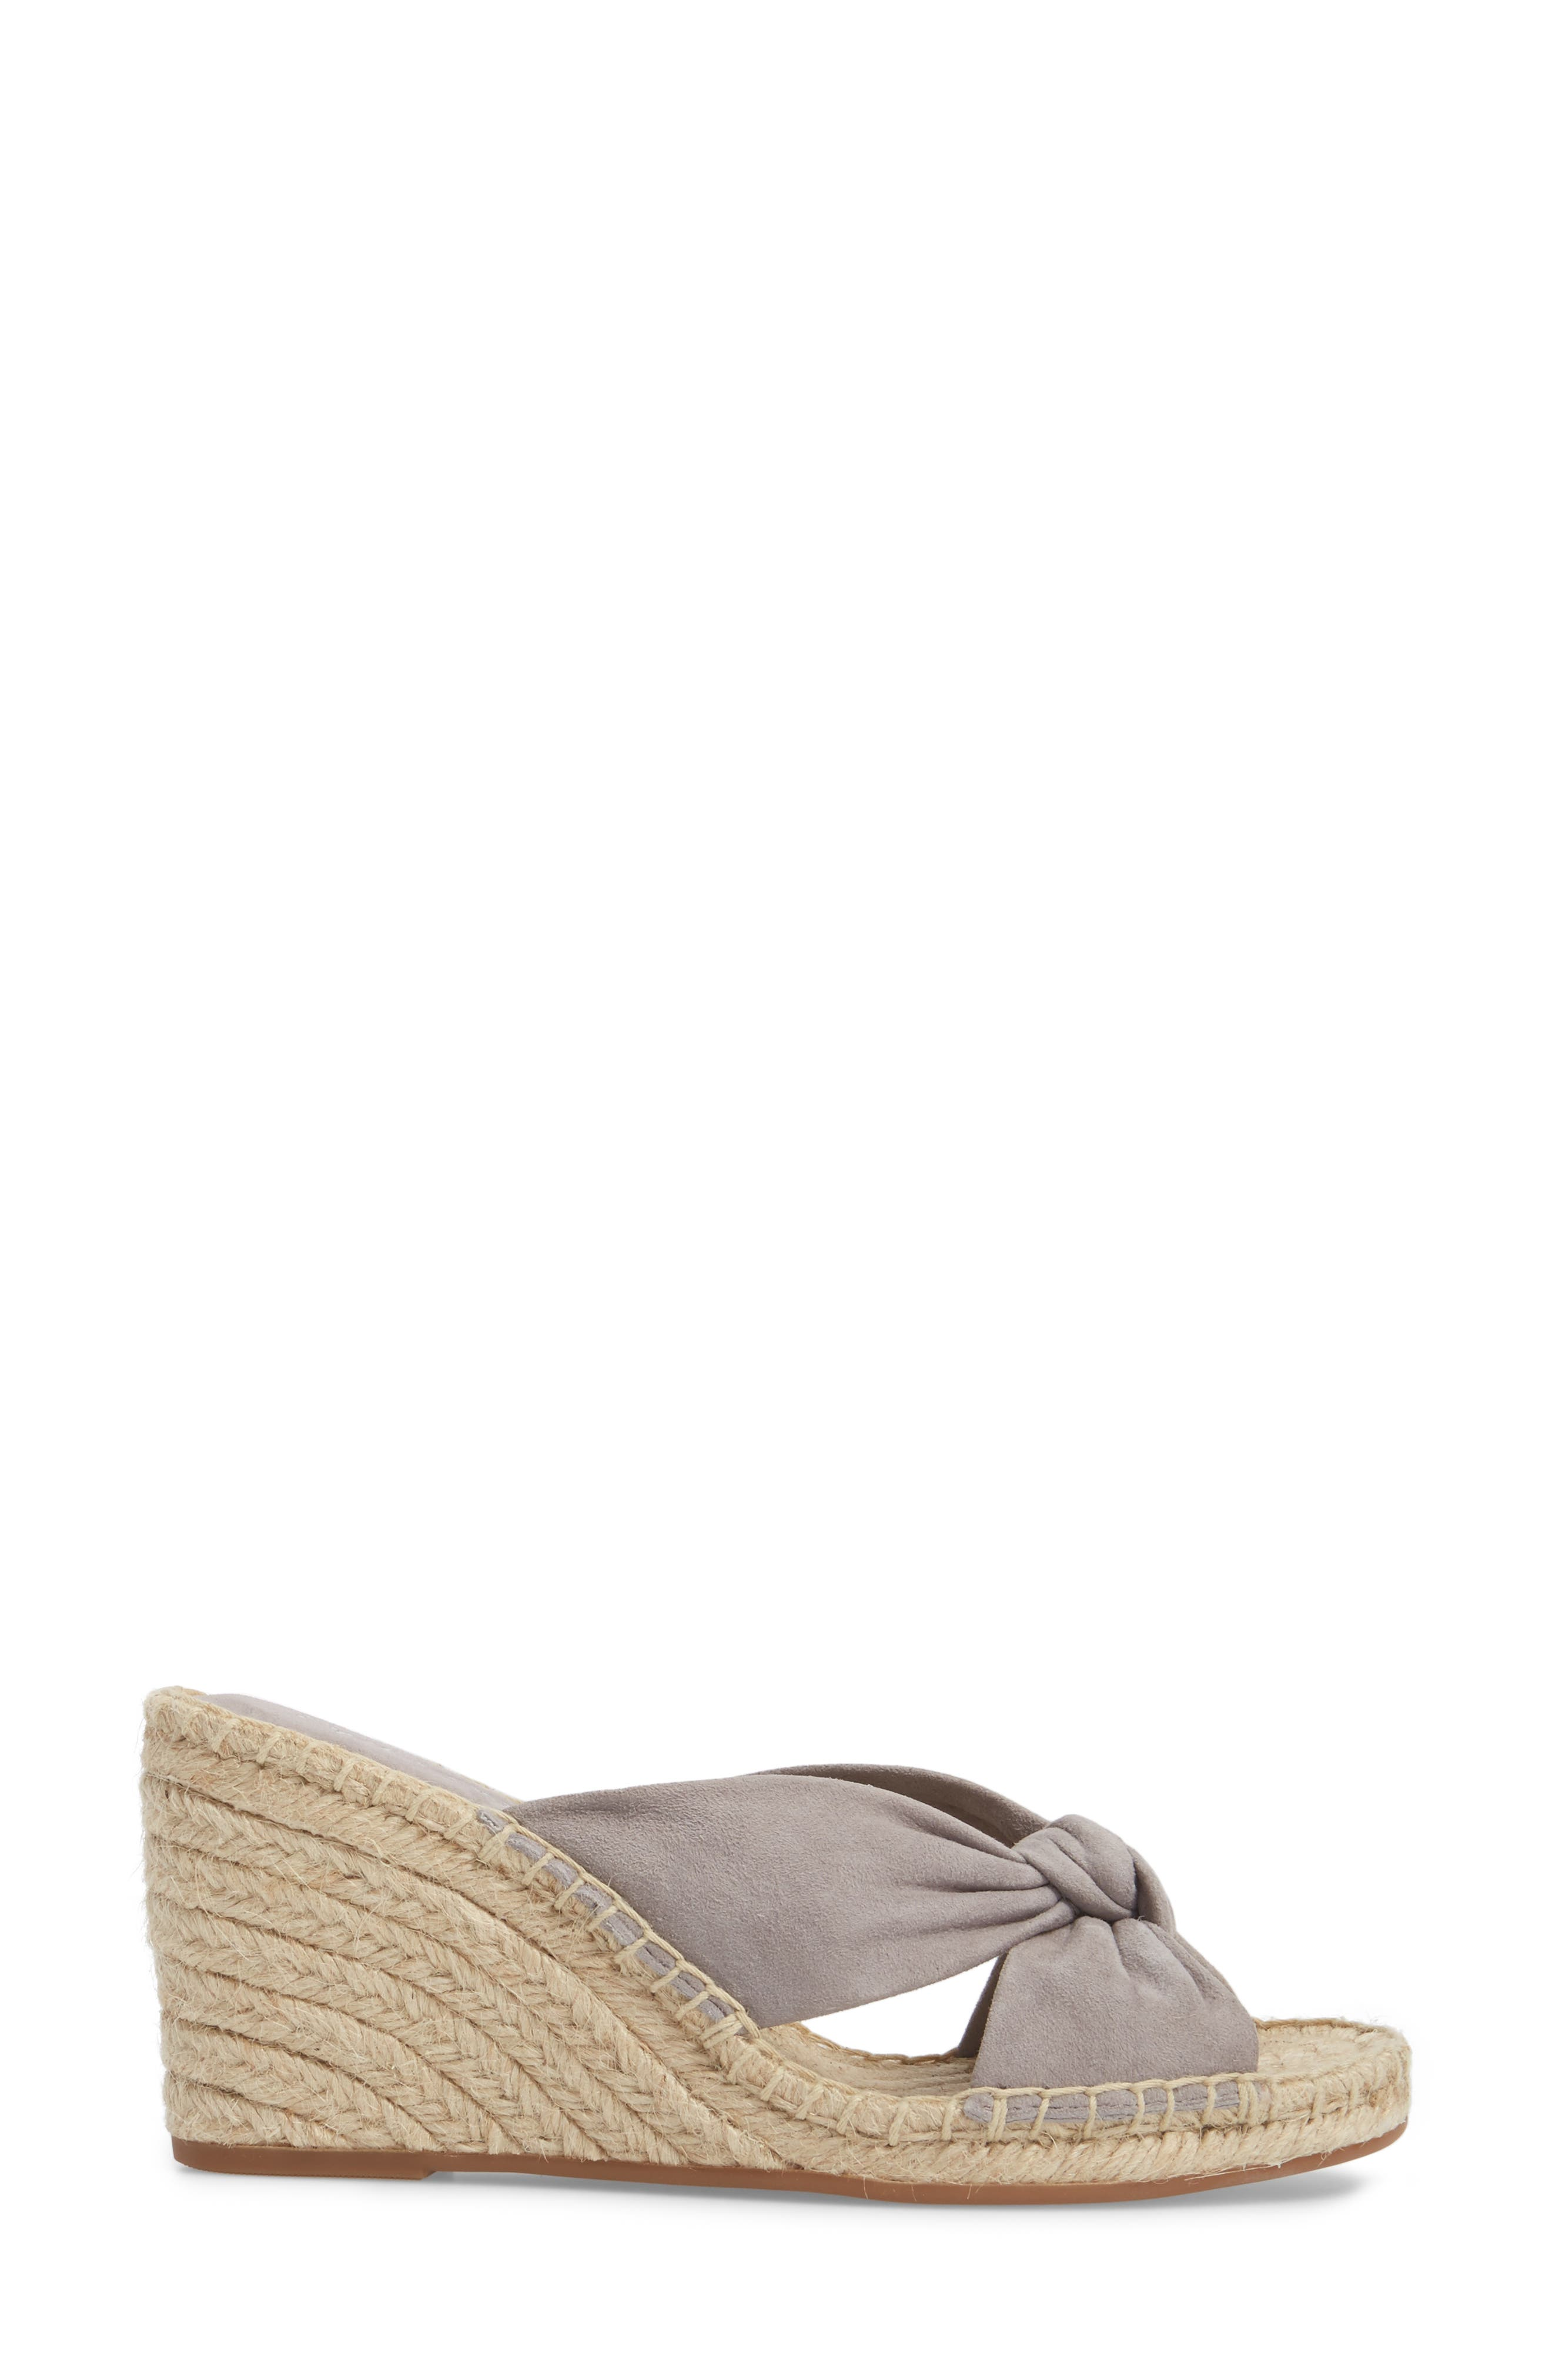 Bautista Knotted Wedge Sandal,                             Alternate thumbnail 3, color,                             Grey Suede